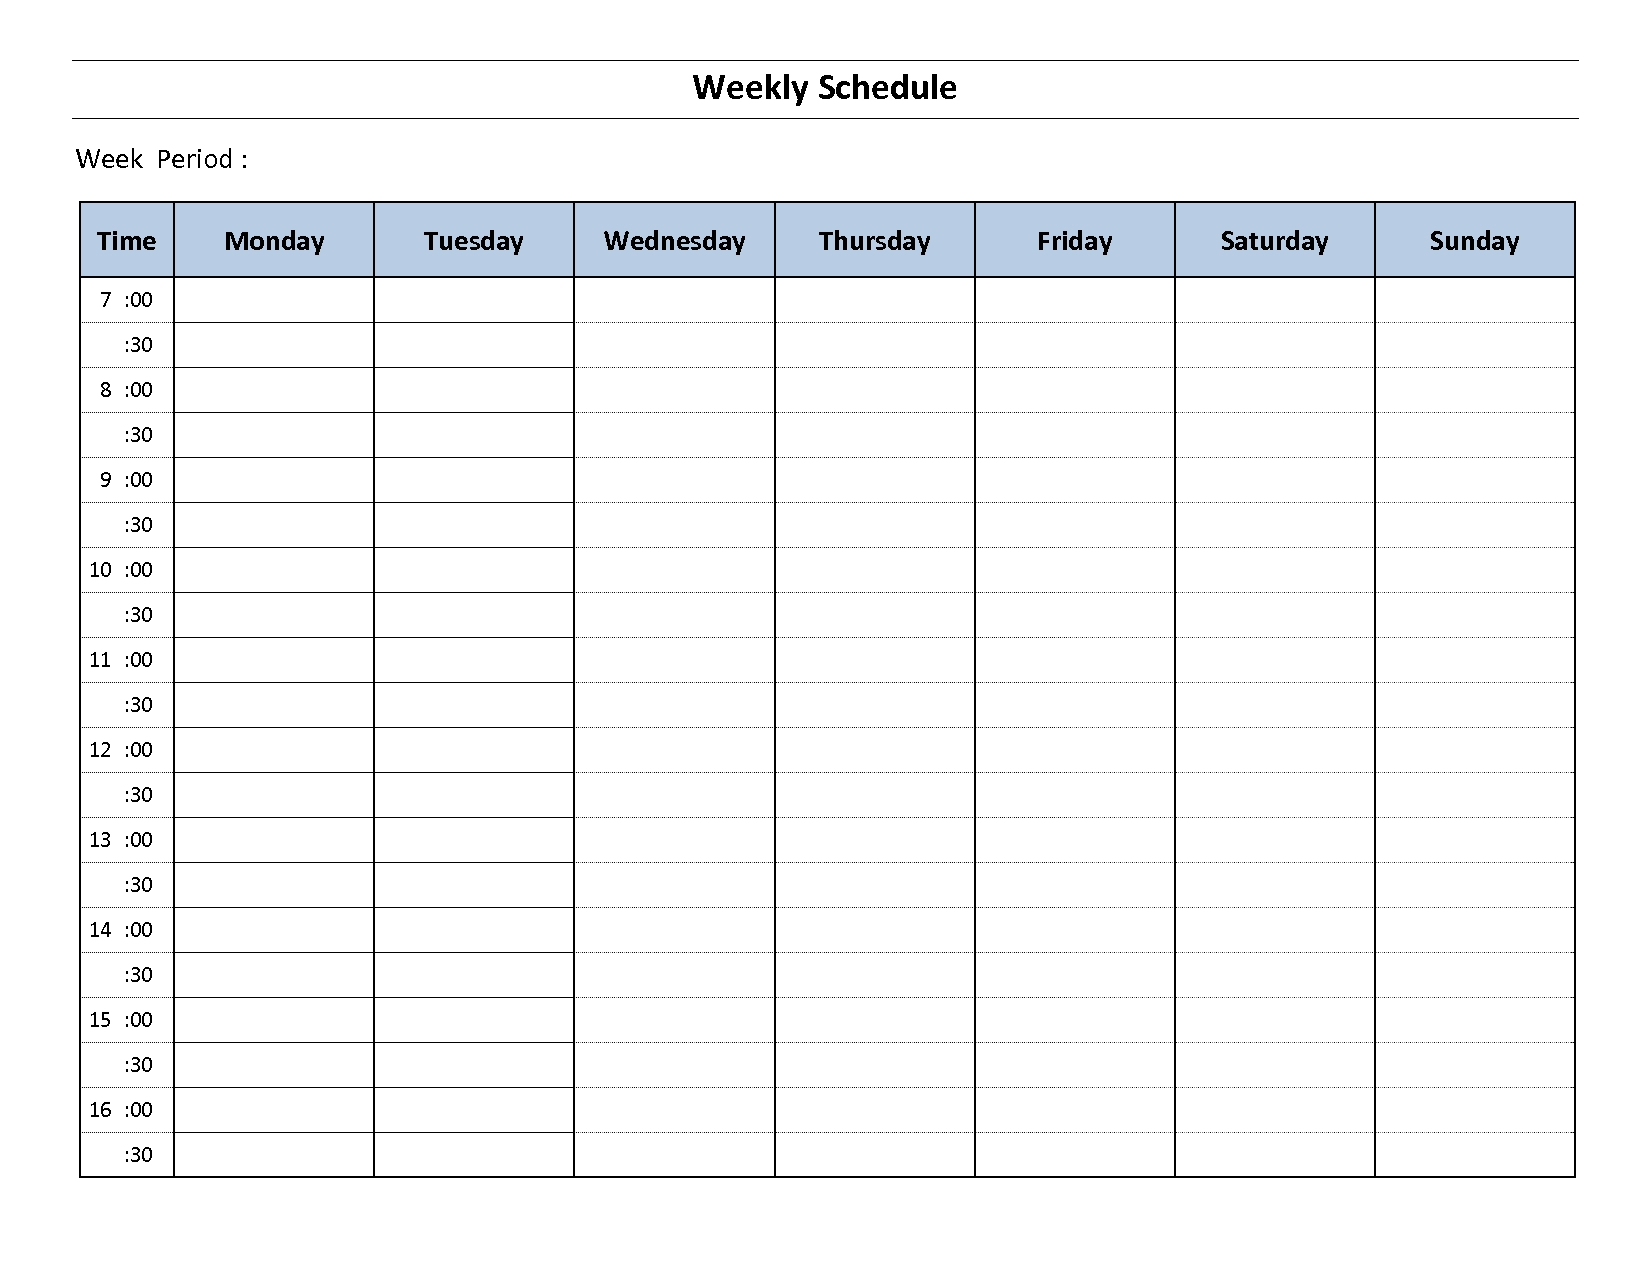 Construction Schedule Template Excel Free Download | Weekly  7 Day Schedule Template In Every 30 Minutes